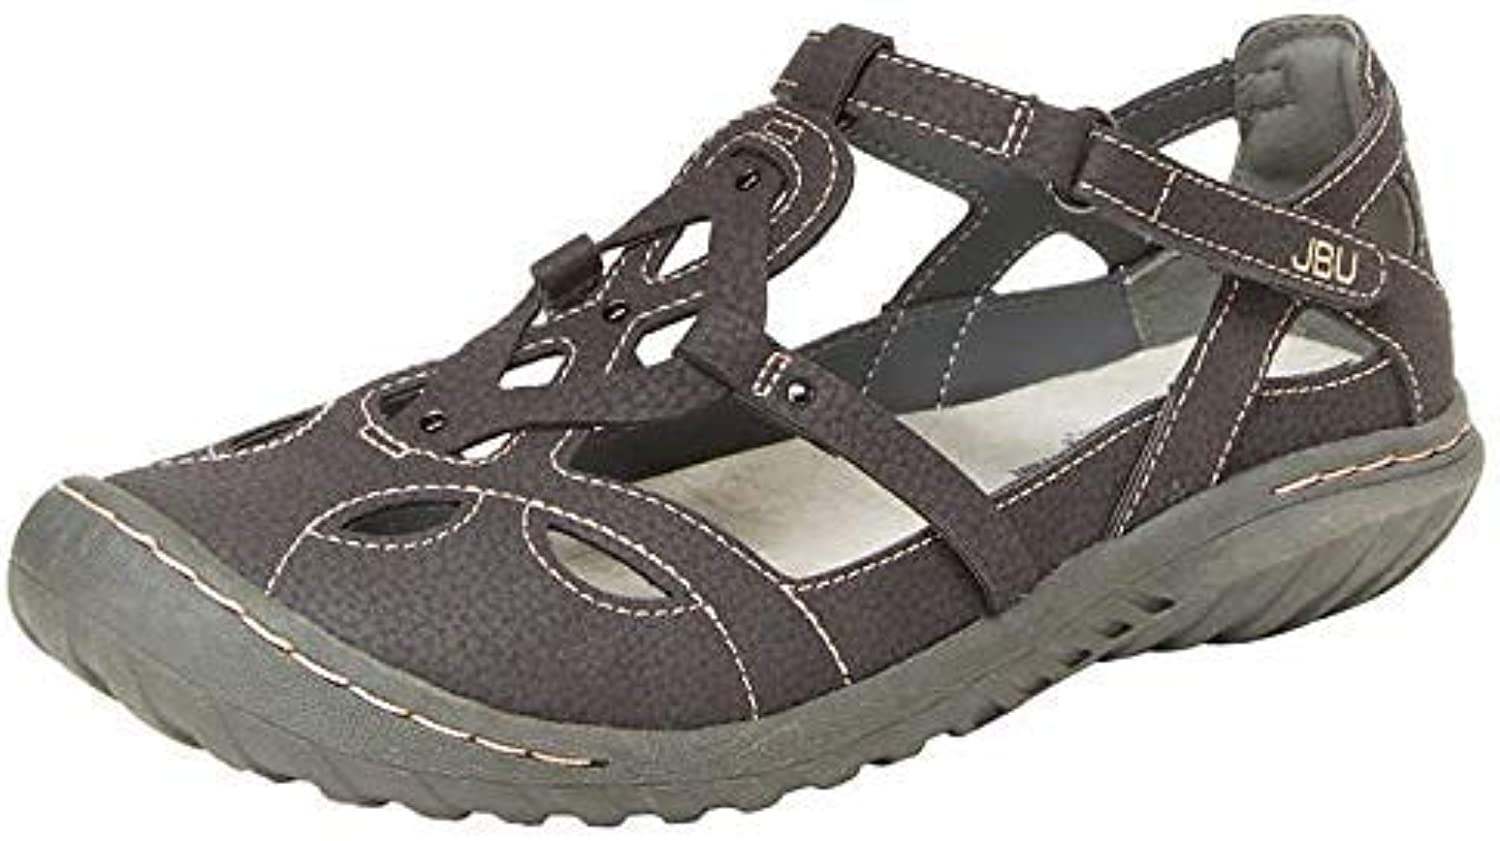 Jambu JBU Ladies' Sydney Sandal Flat Sandals for Women